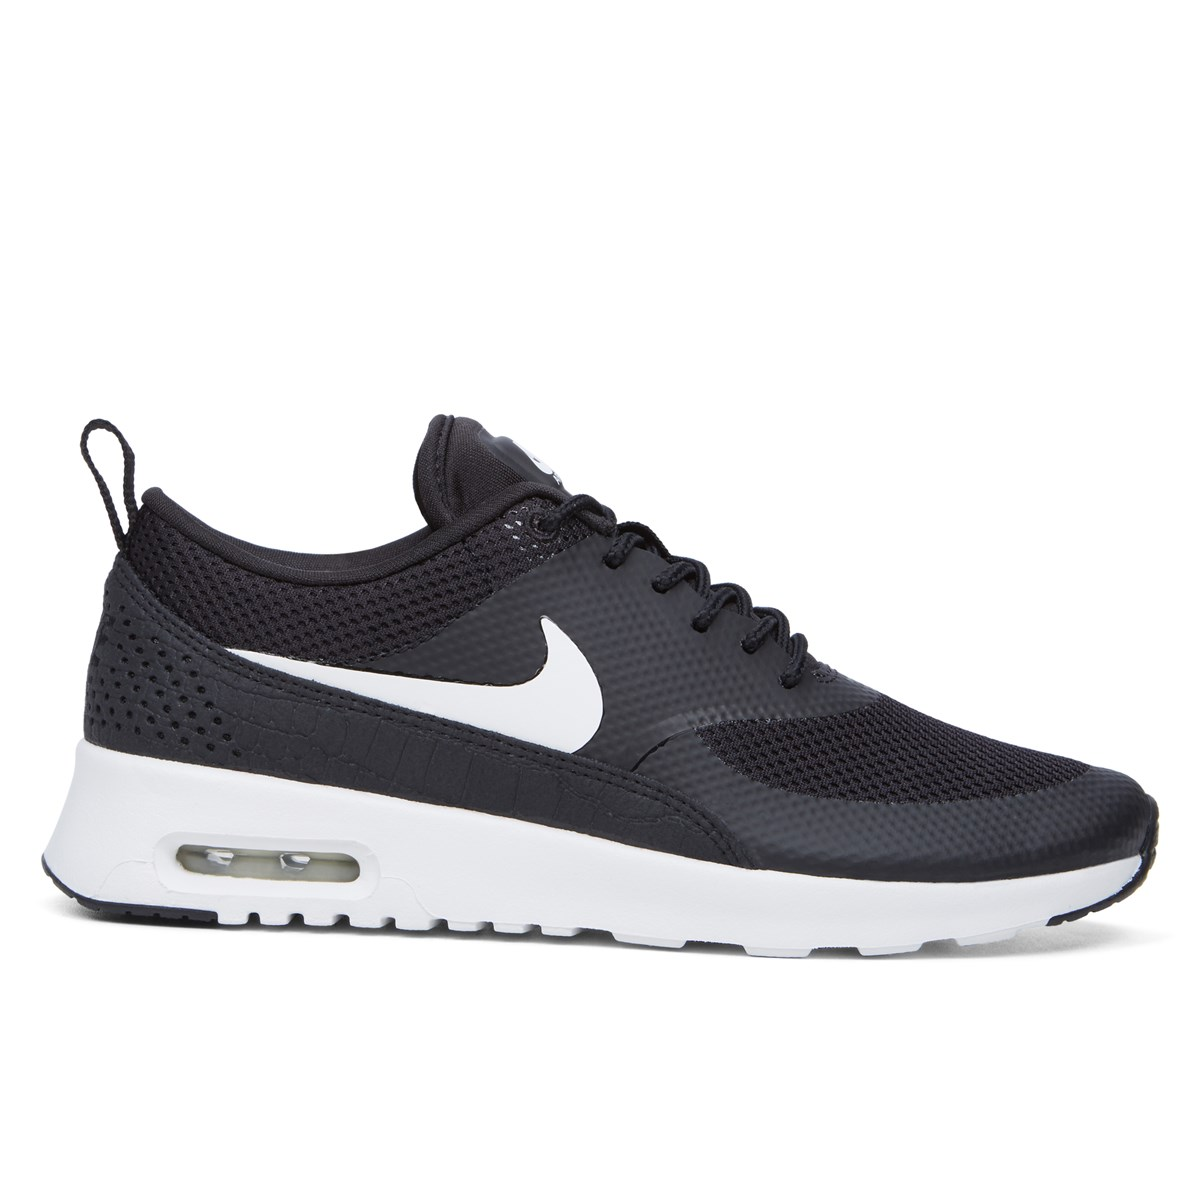 c13d348a8ac Women s Air Max Thea Black Sneaker. Previous. default view  ALT1  ALT2